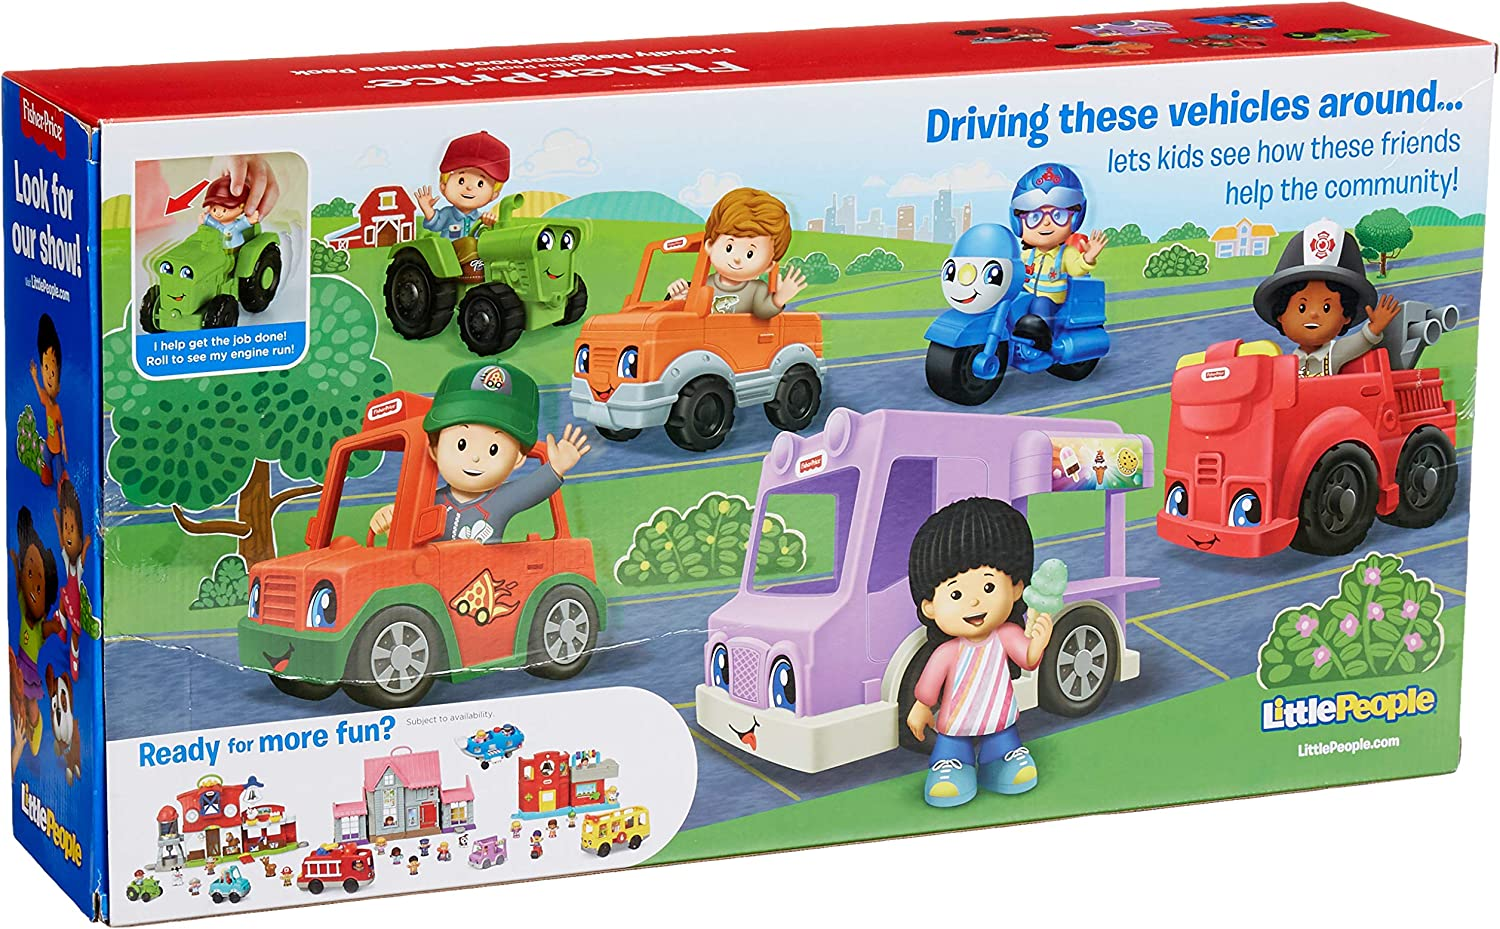 Fisher-Price Little People Friendly Neighborhood Vehicle Gift Set, Toddlers Explore Different Roles People Play in Their Neighborhood with This Set Featuring 6 Roll-Along Vehicles and Figures: Toys & Games